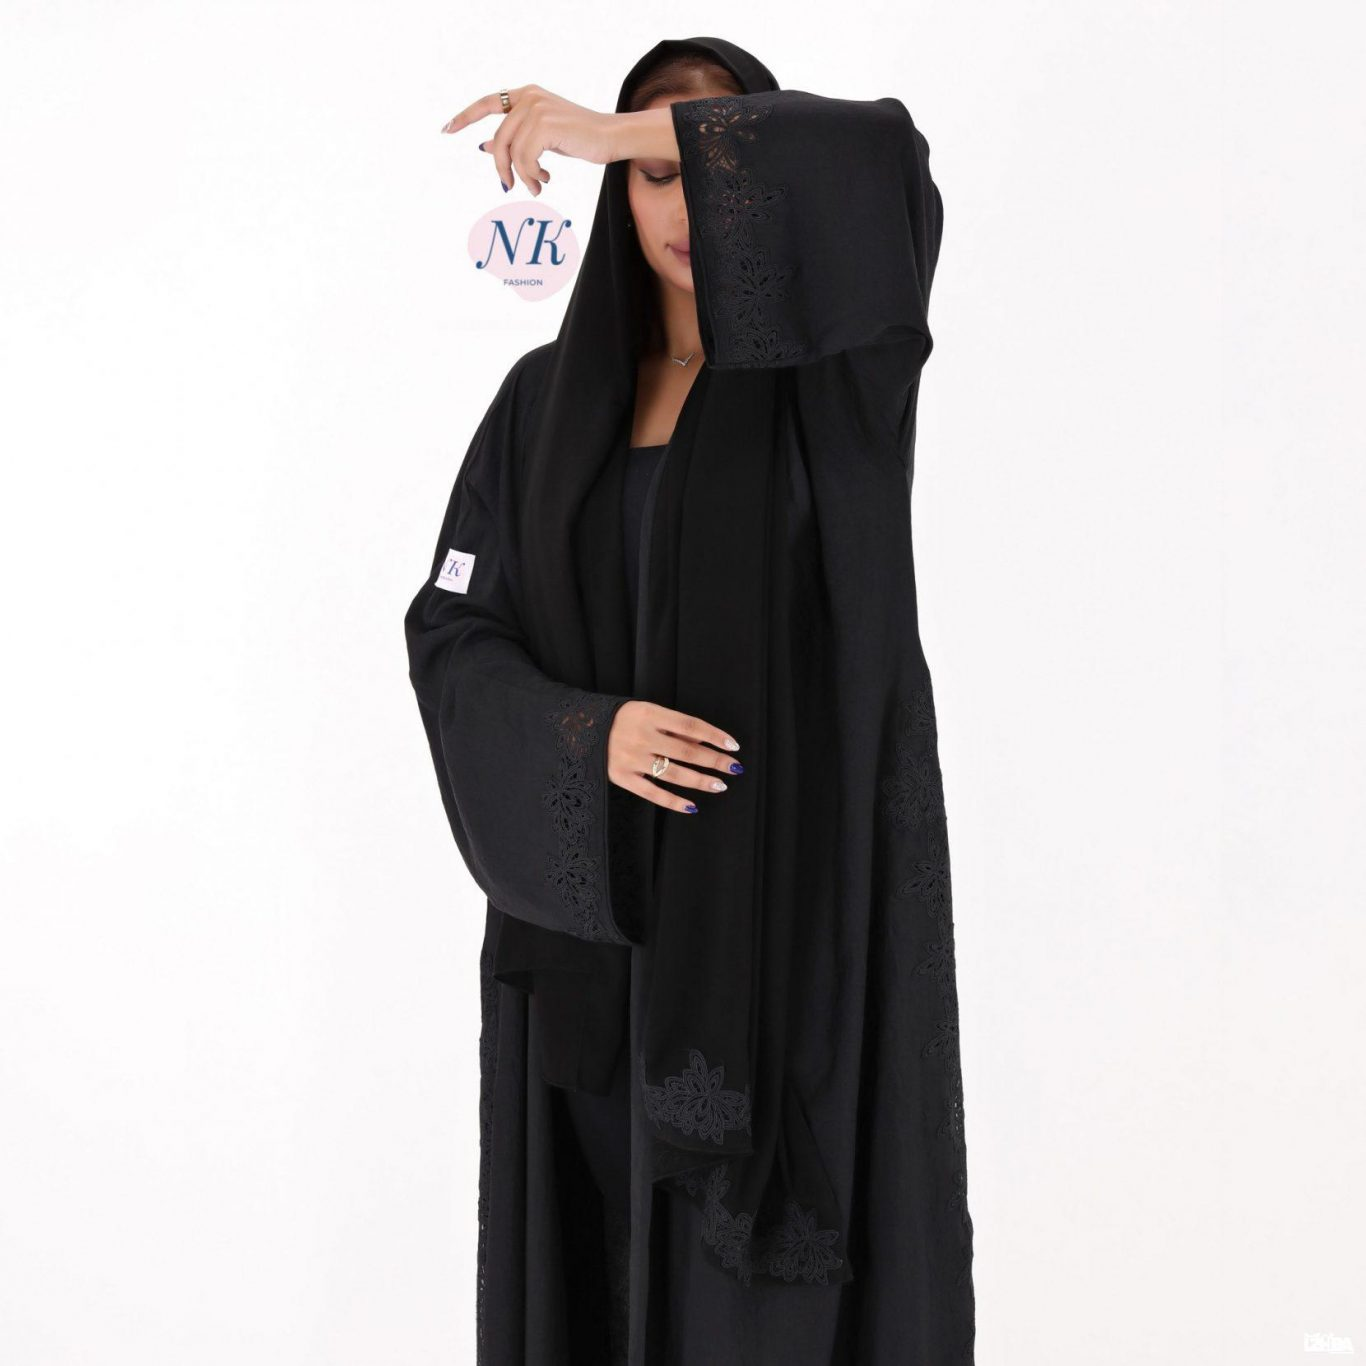 Black Abaya with a Small Lace